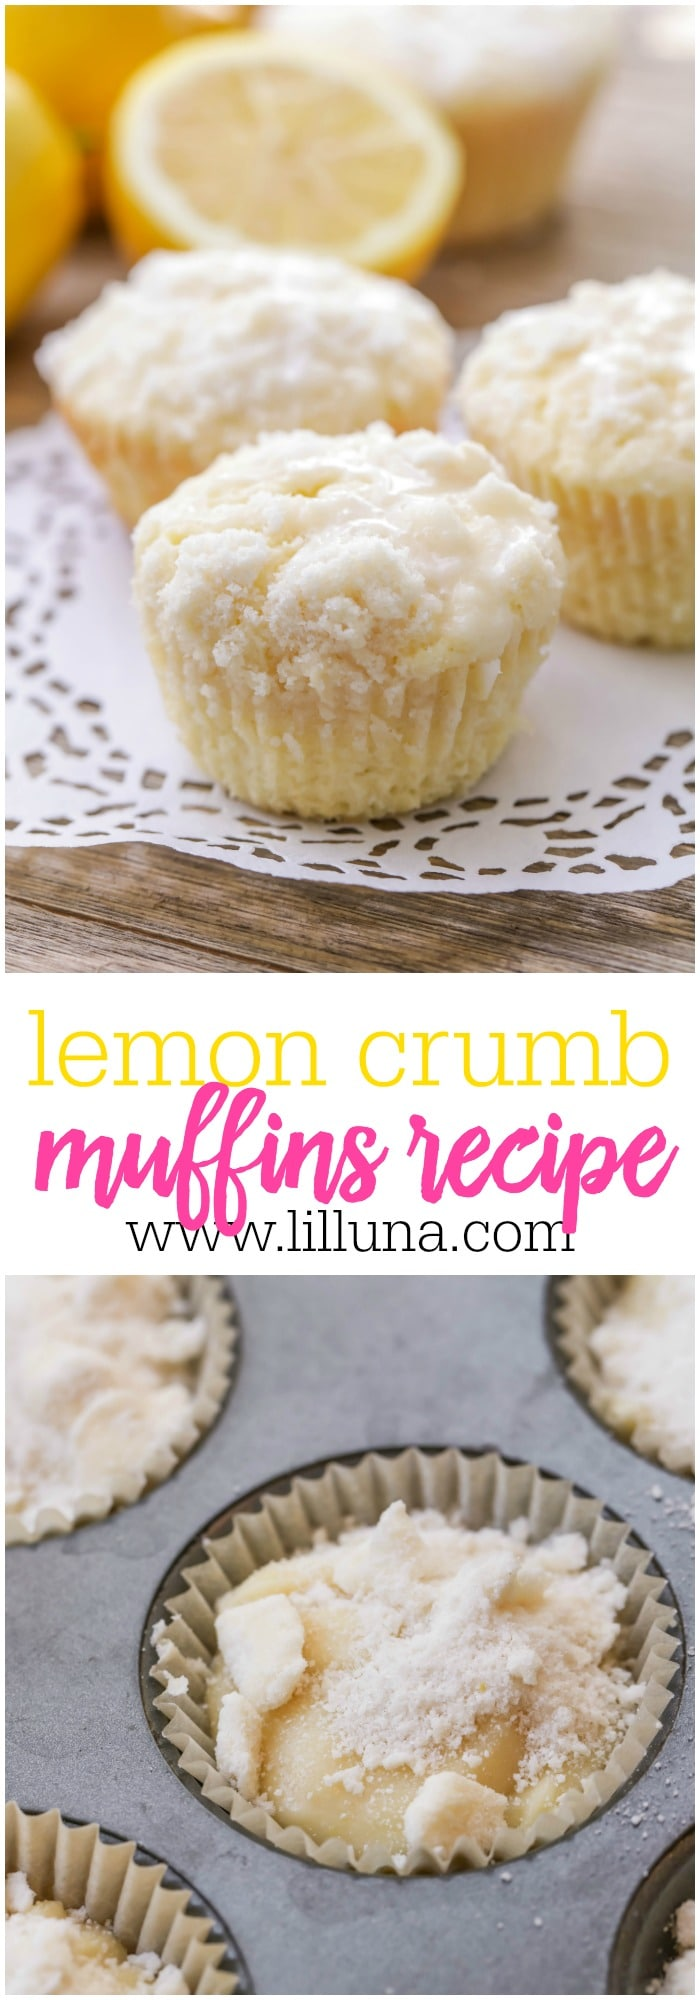 Lemon Crumb Muffins - these soft, delicious muffins are topped with crumbs and a delicious lemon glaze making them irresistible!